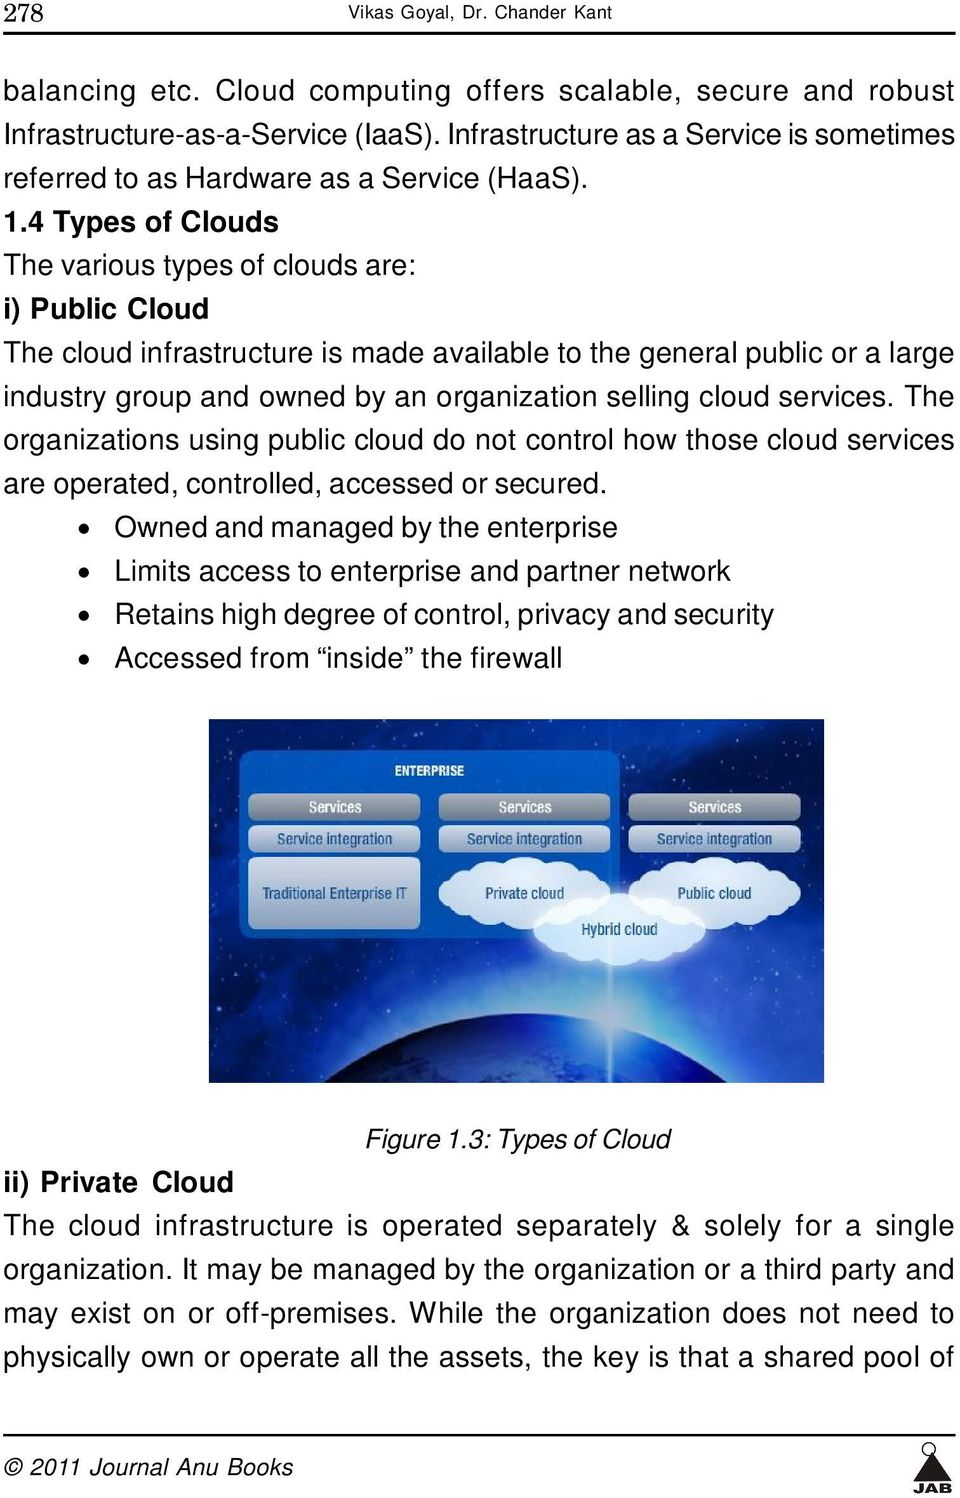 4 Types of Clouds The various types of clouds are: i) Public Cloud The cloud infrastructure is made available to the general public or a large industry group and owned by an organization selling